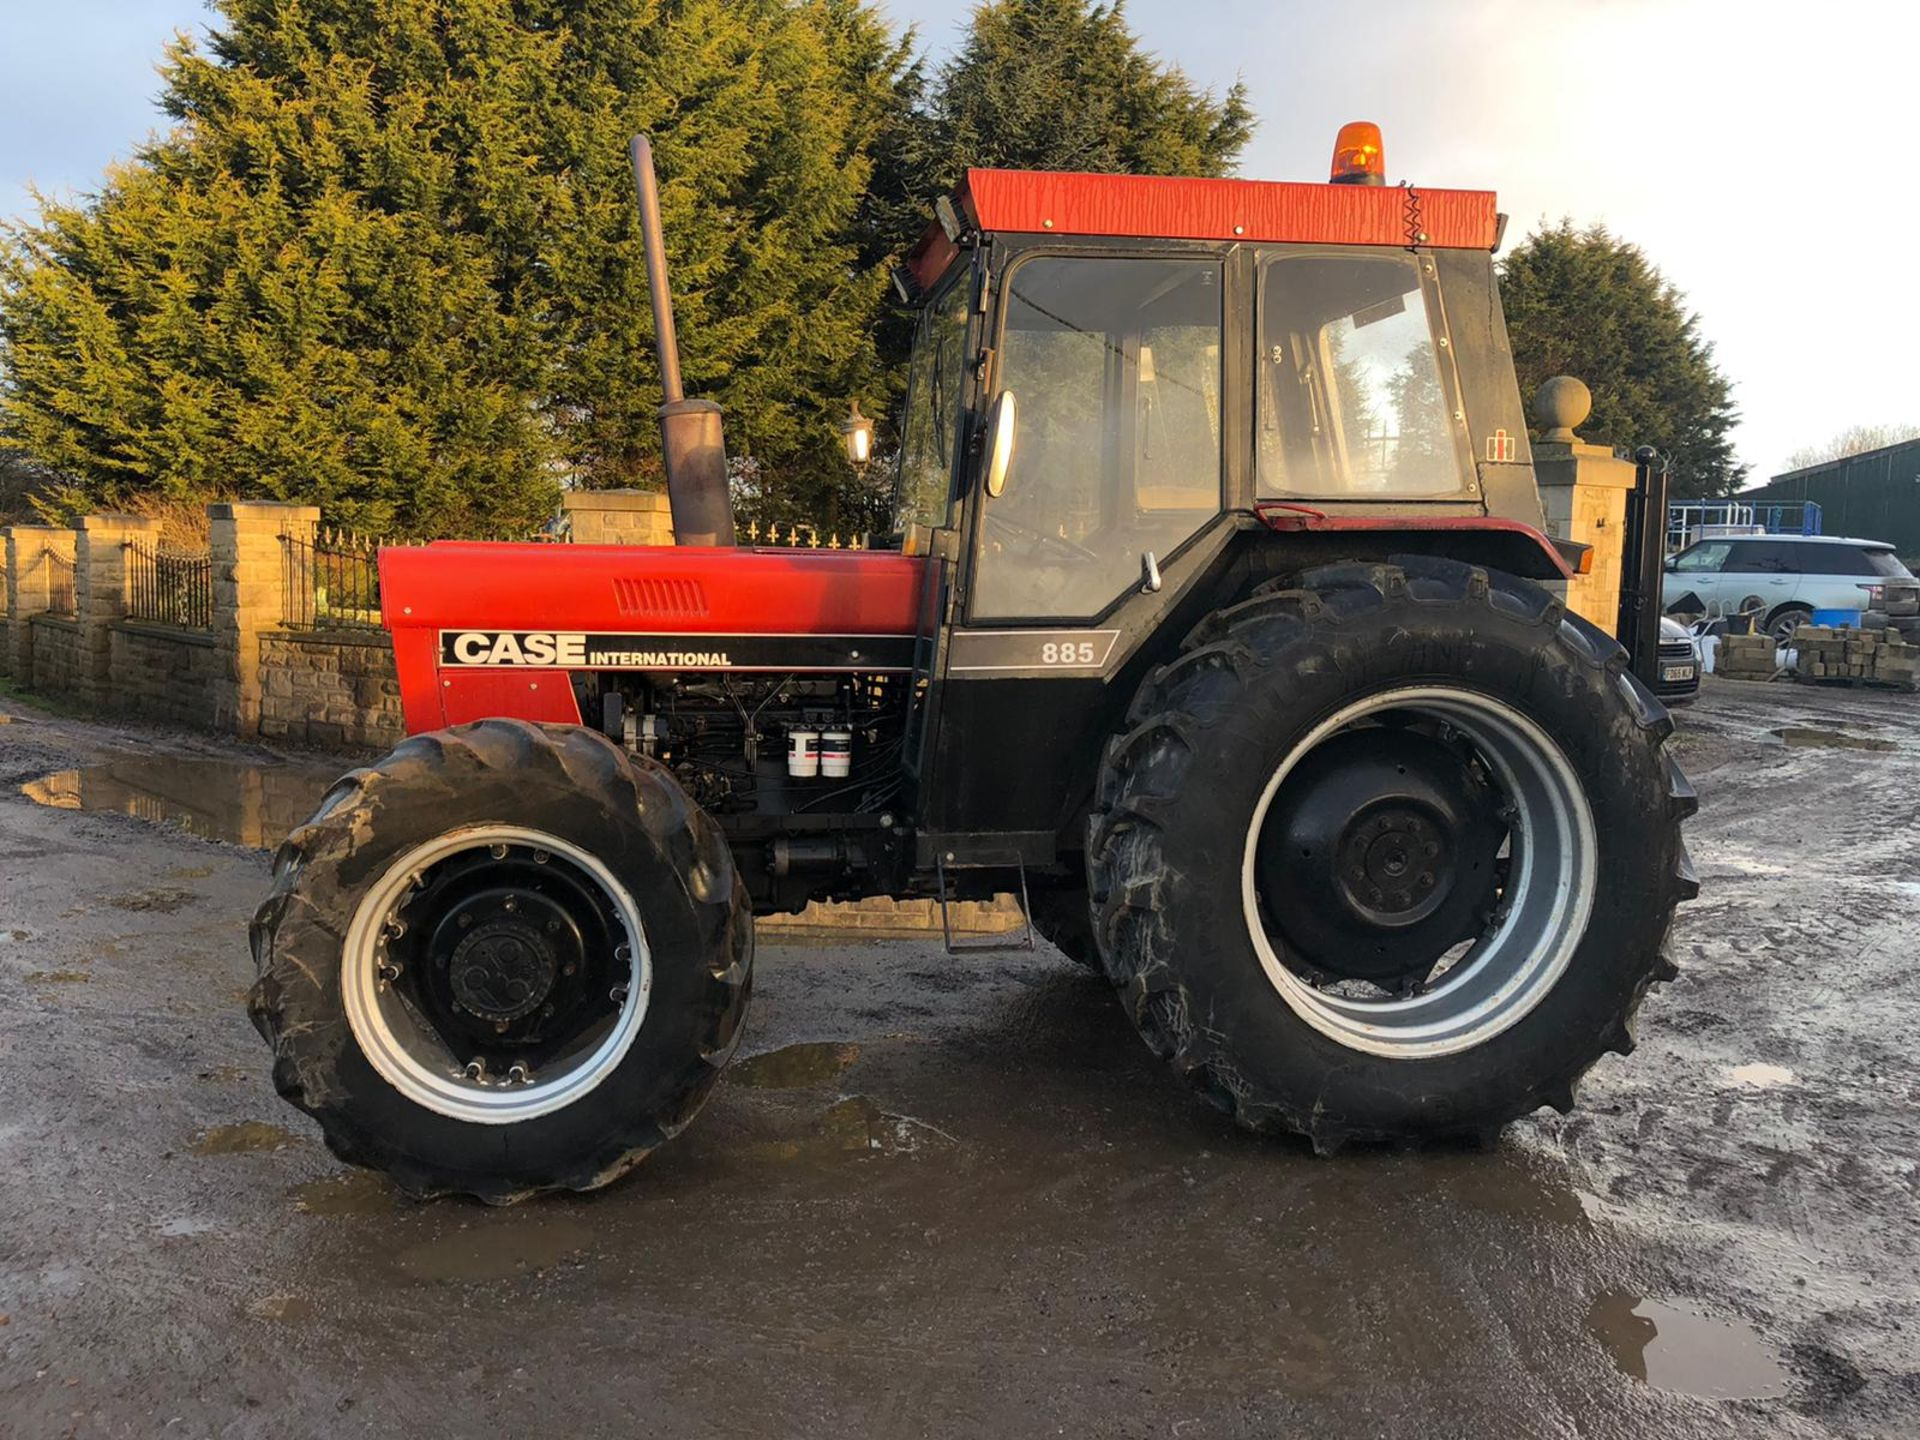 Lot 100 - 1985/C REG CASE INTERNATIONAL 885 DIESEL RED TRACTOR, RUNS AND WORKS, IN GOOD CONDITION *PLUS VAT*